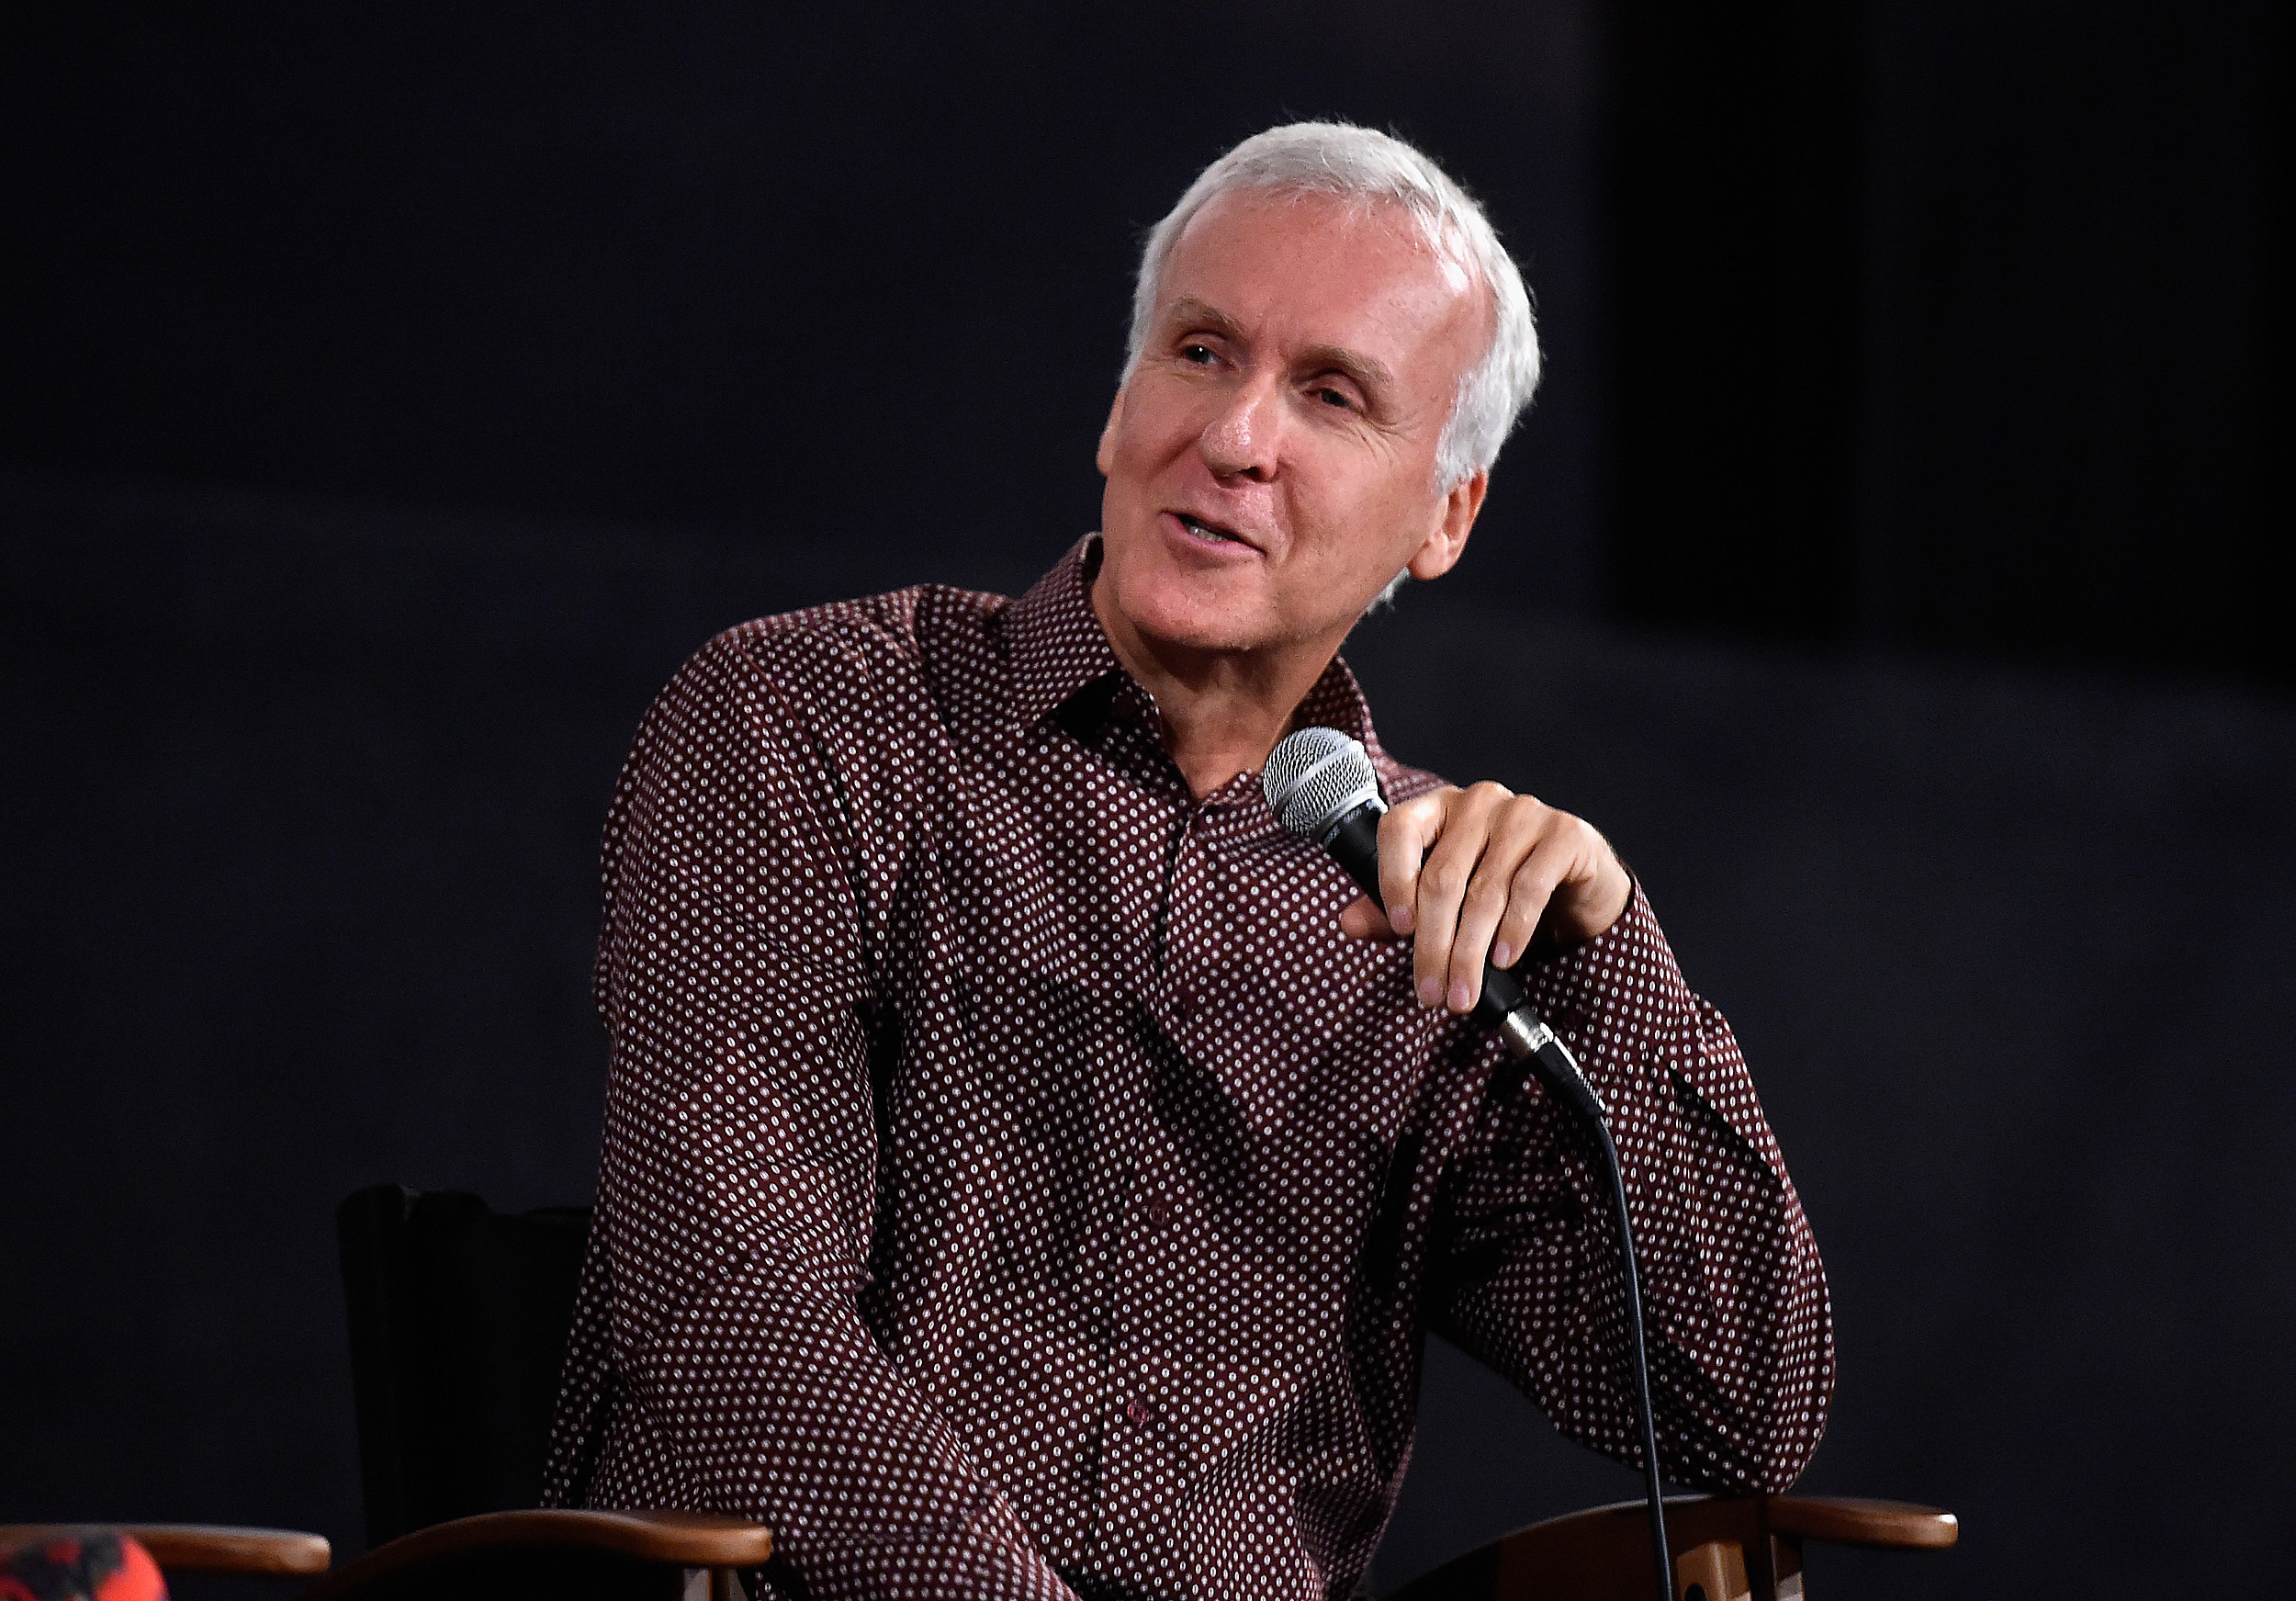 James Cameron has revealed what the Avatar sequels will be about